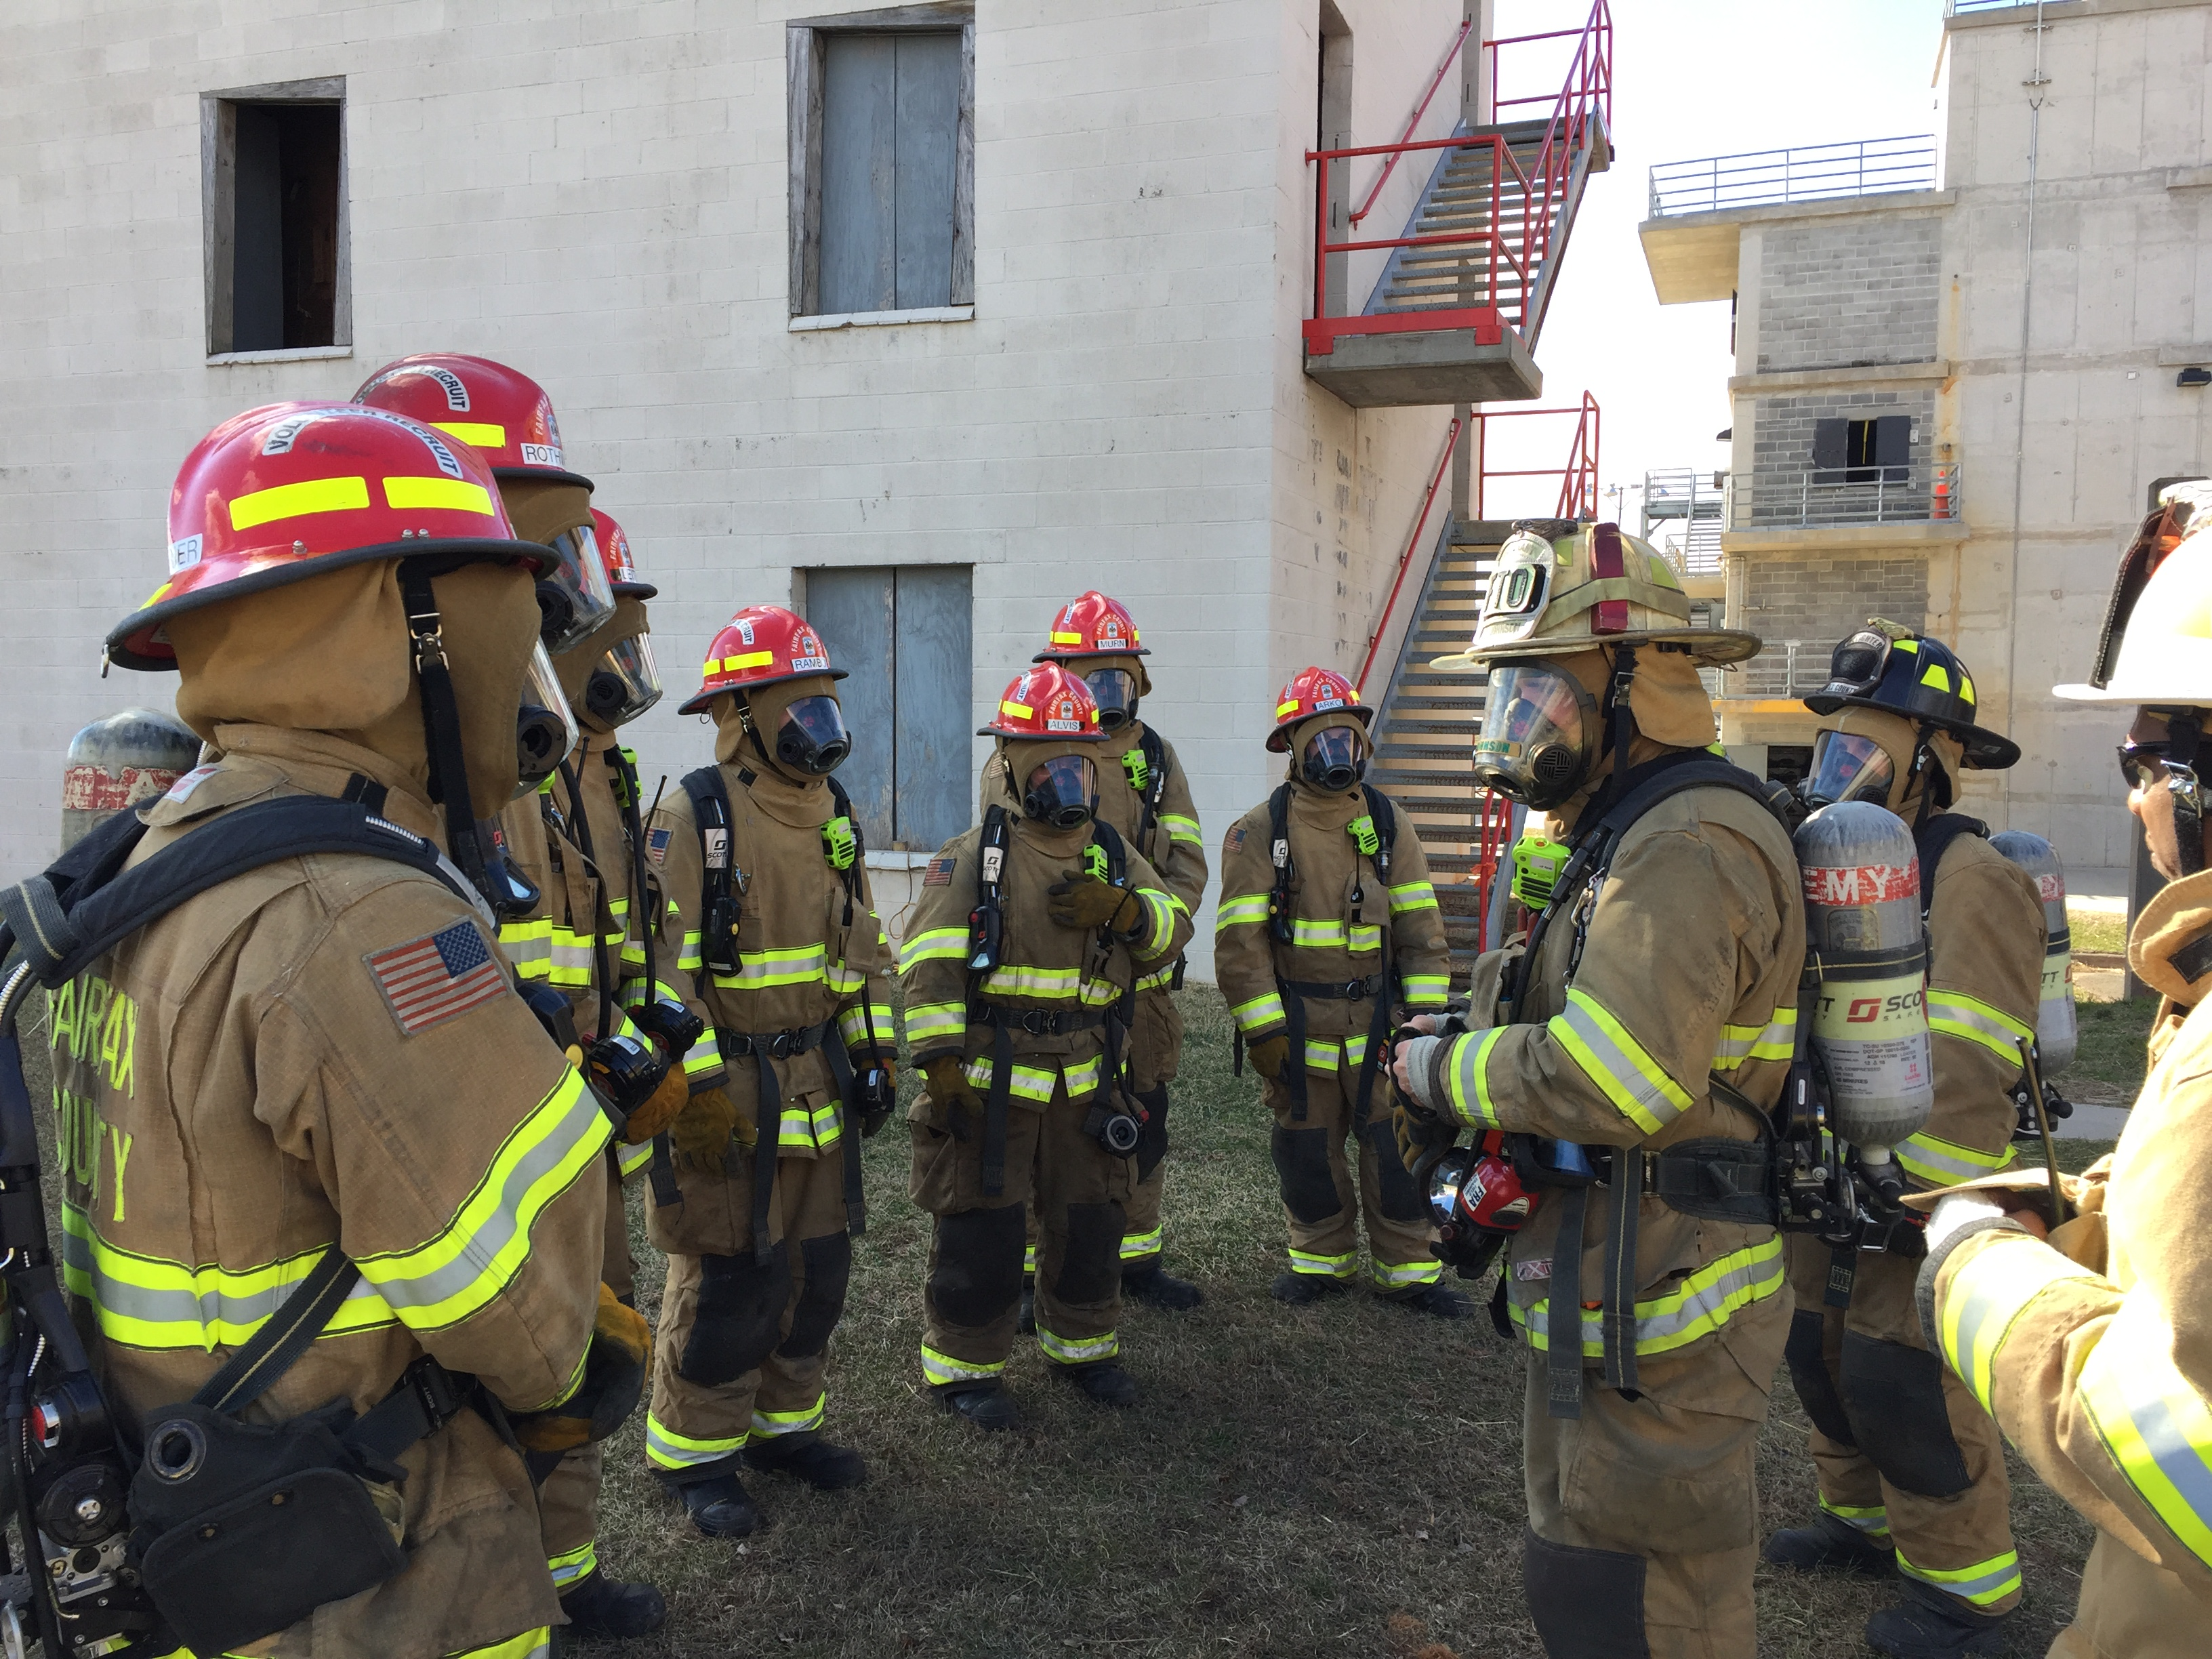 Fire Department Recruit Training Fairfax County Fire And Rescue